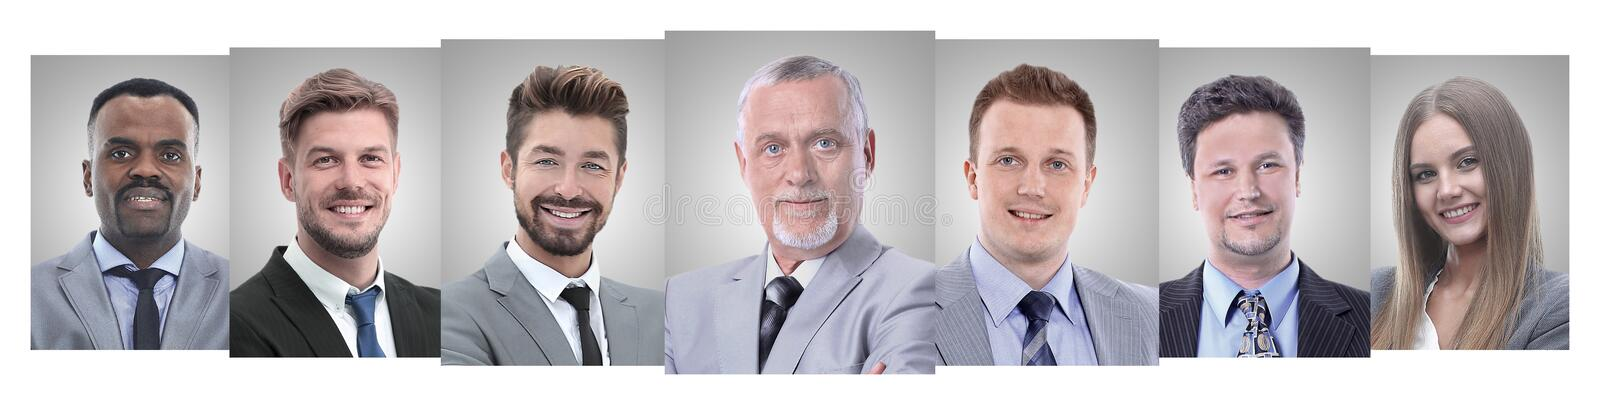 Panoramic collage of portraits of young entrepreneurs. stock photo